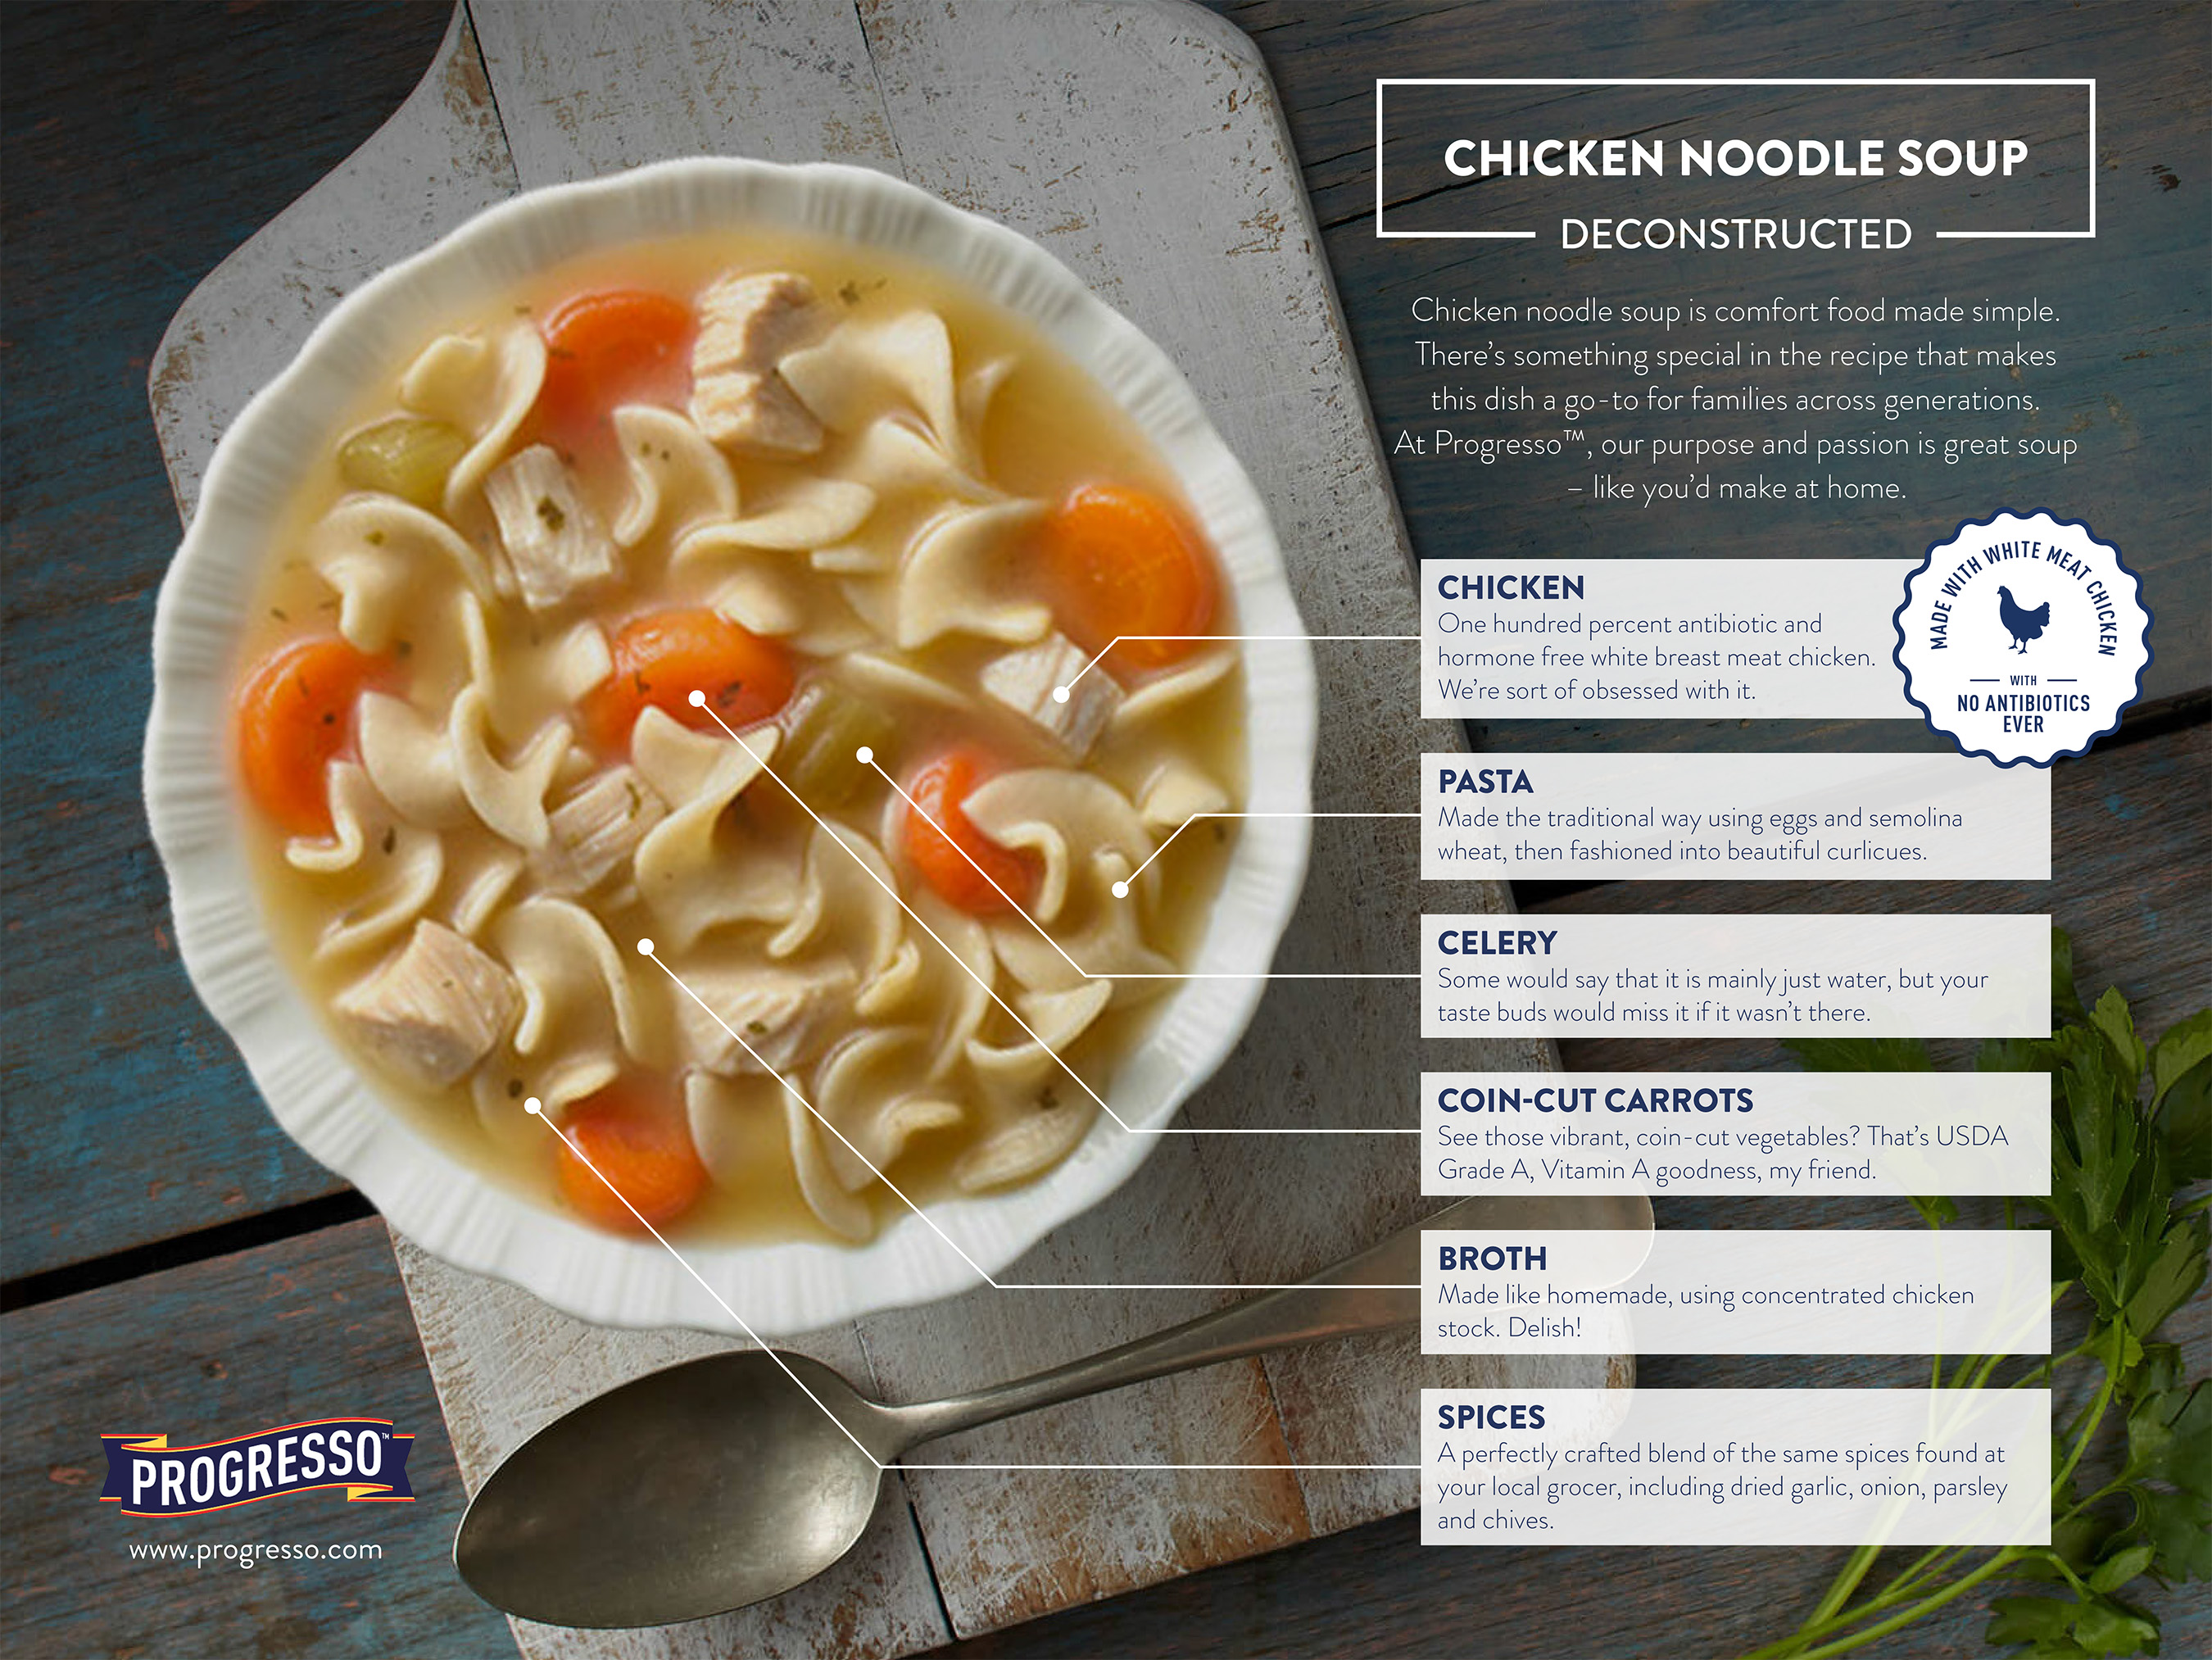 Progresso Completes Move To Antibiotic And Hormone Free Chicken Breasts In All Chicken Soup Varieties